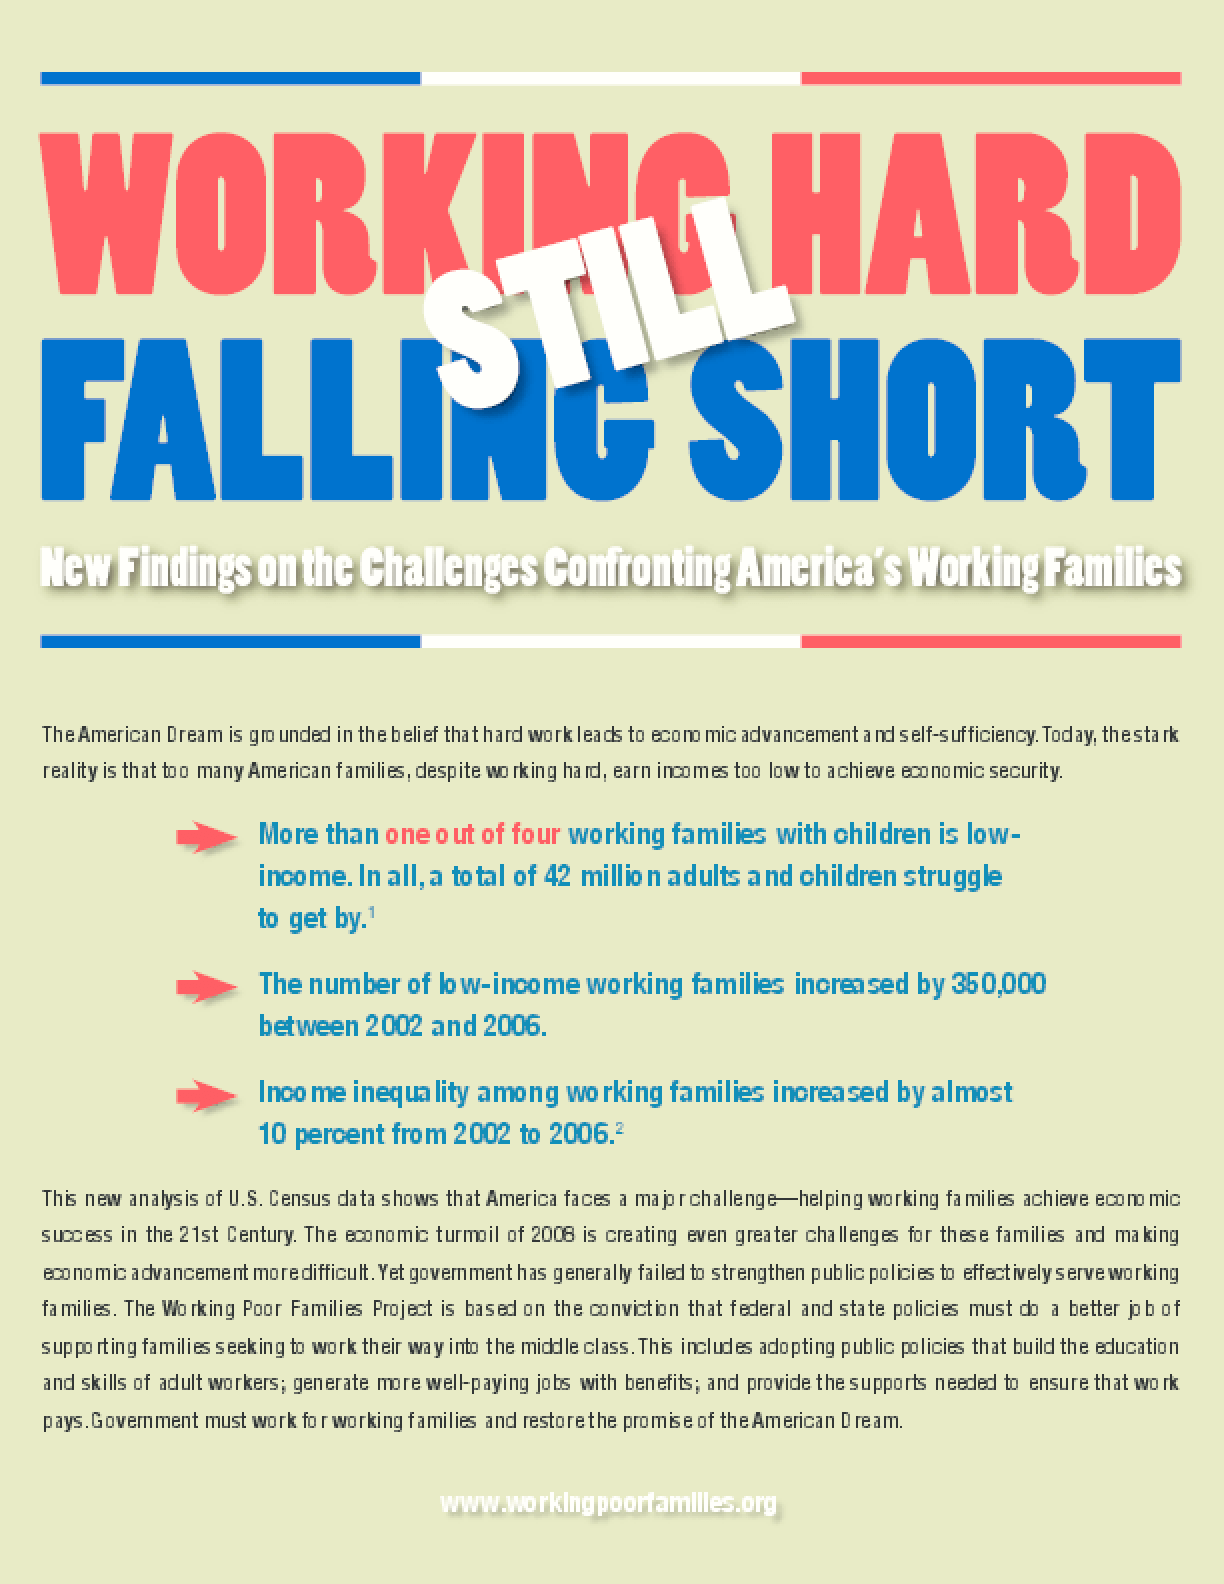 Still Working Hard, Still Falling Short: New Findings on the Challenges Confronting America's Working Families